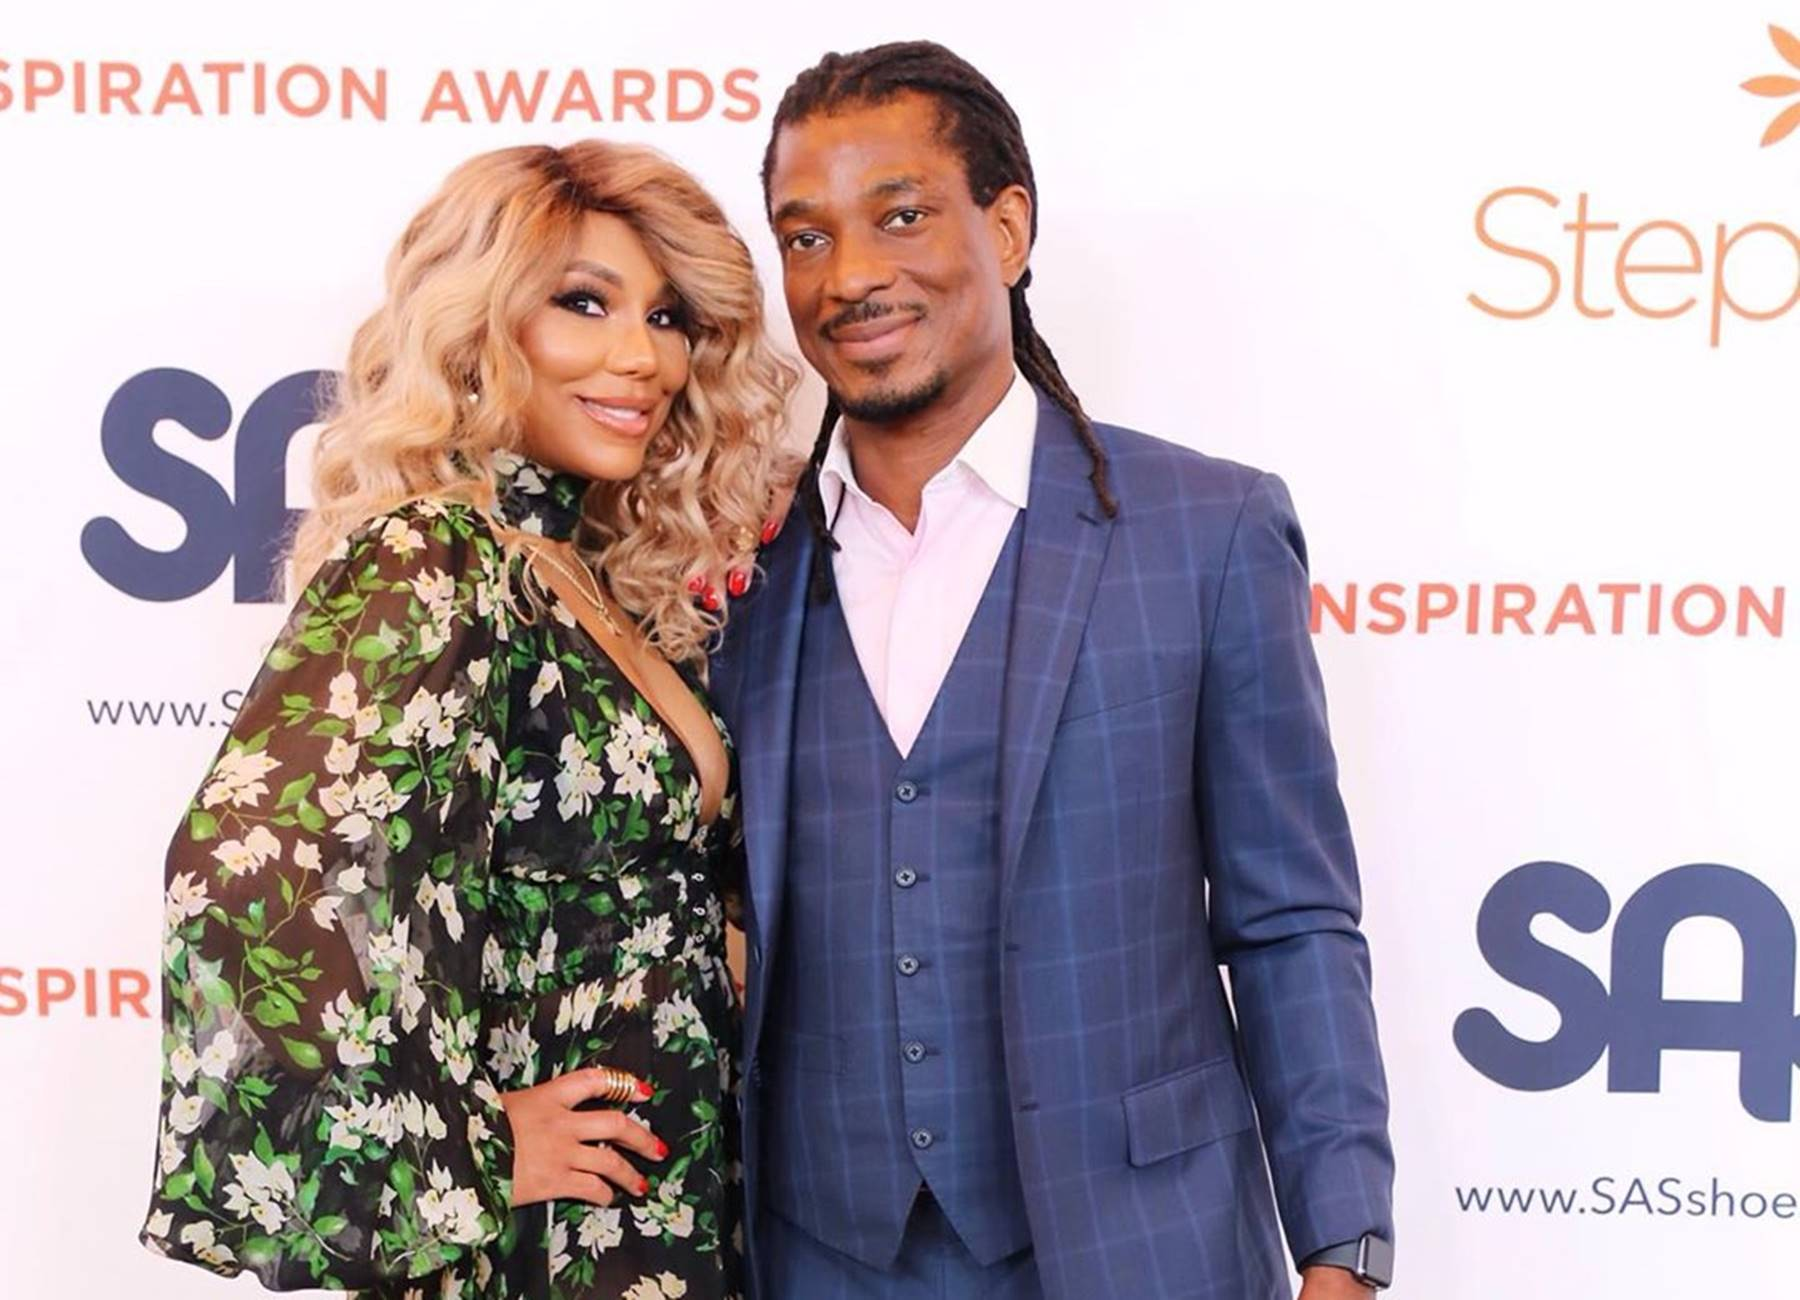 Tamar Braxton's BF, David Adefeso Is In Israel For A Part Vacation, Part Spiritual Journey